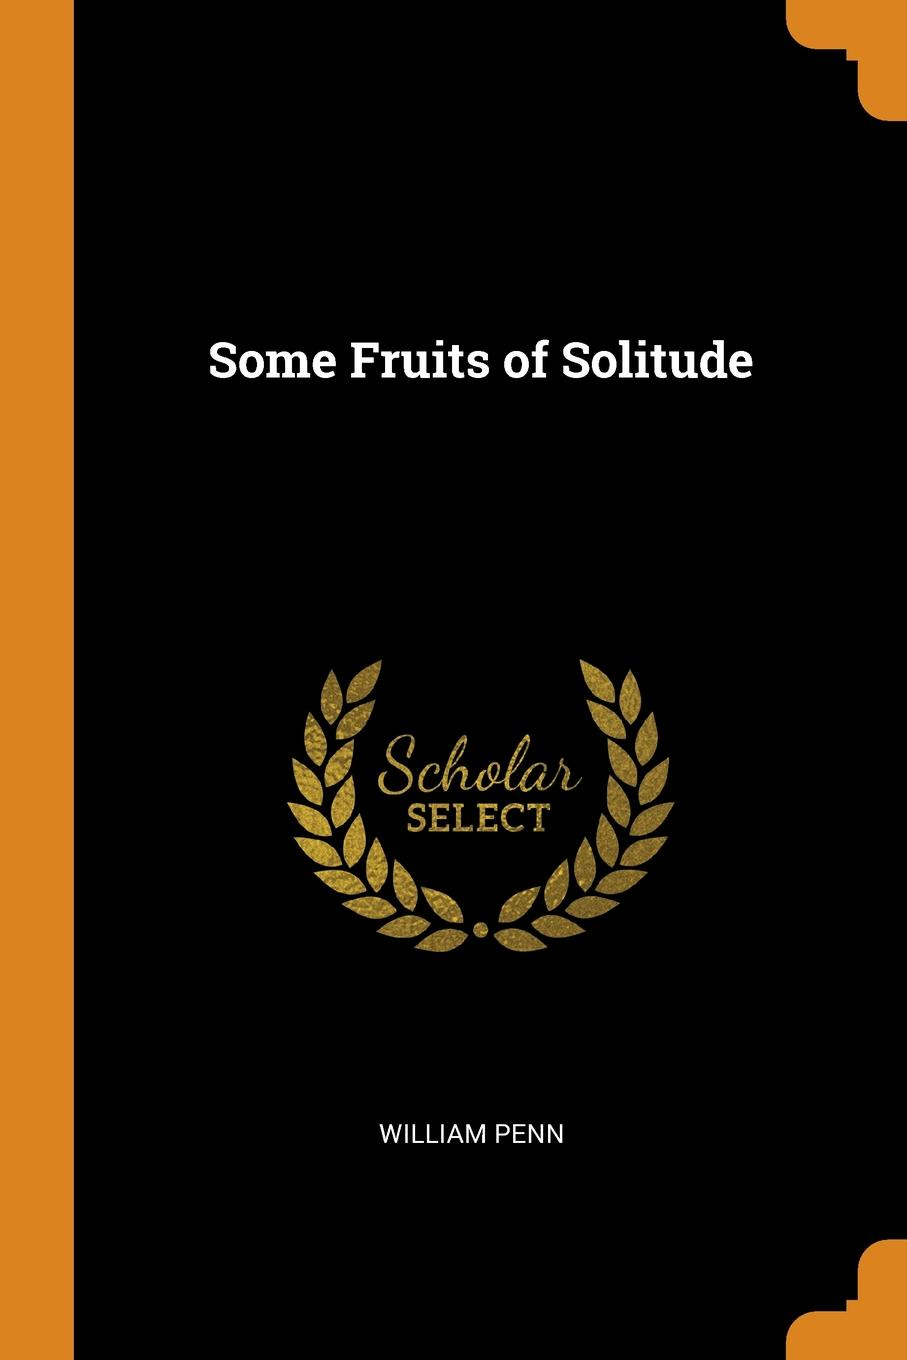 William Penn Some Fruits of Solitude some fruits of solitude more fruits of solitude